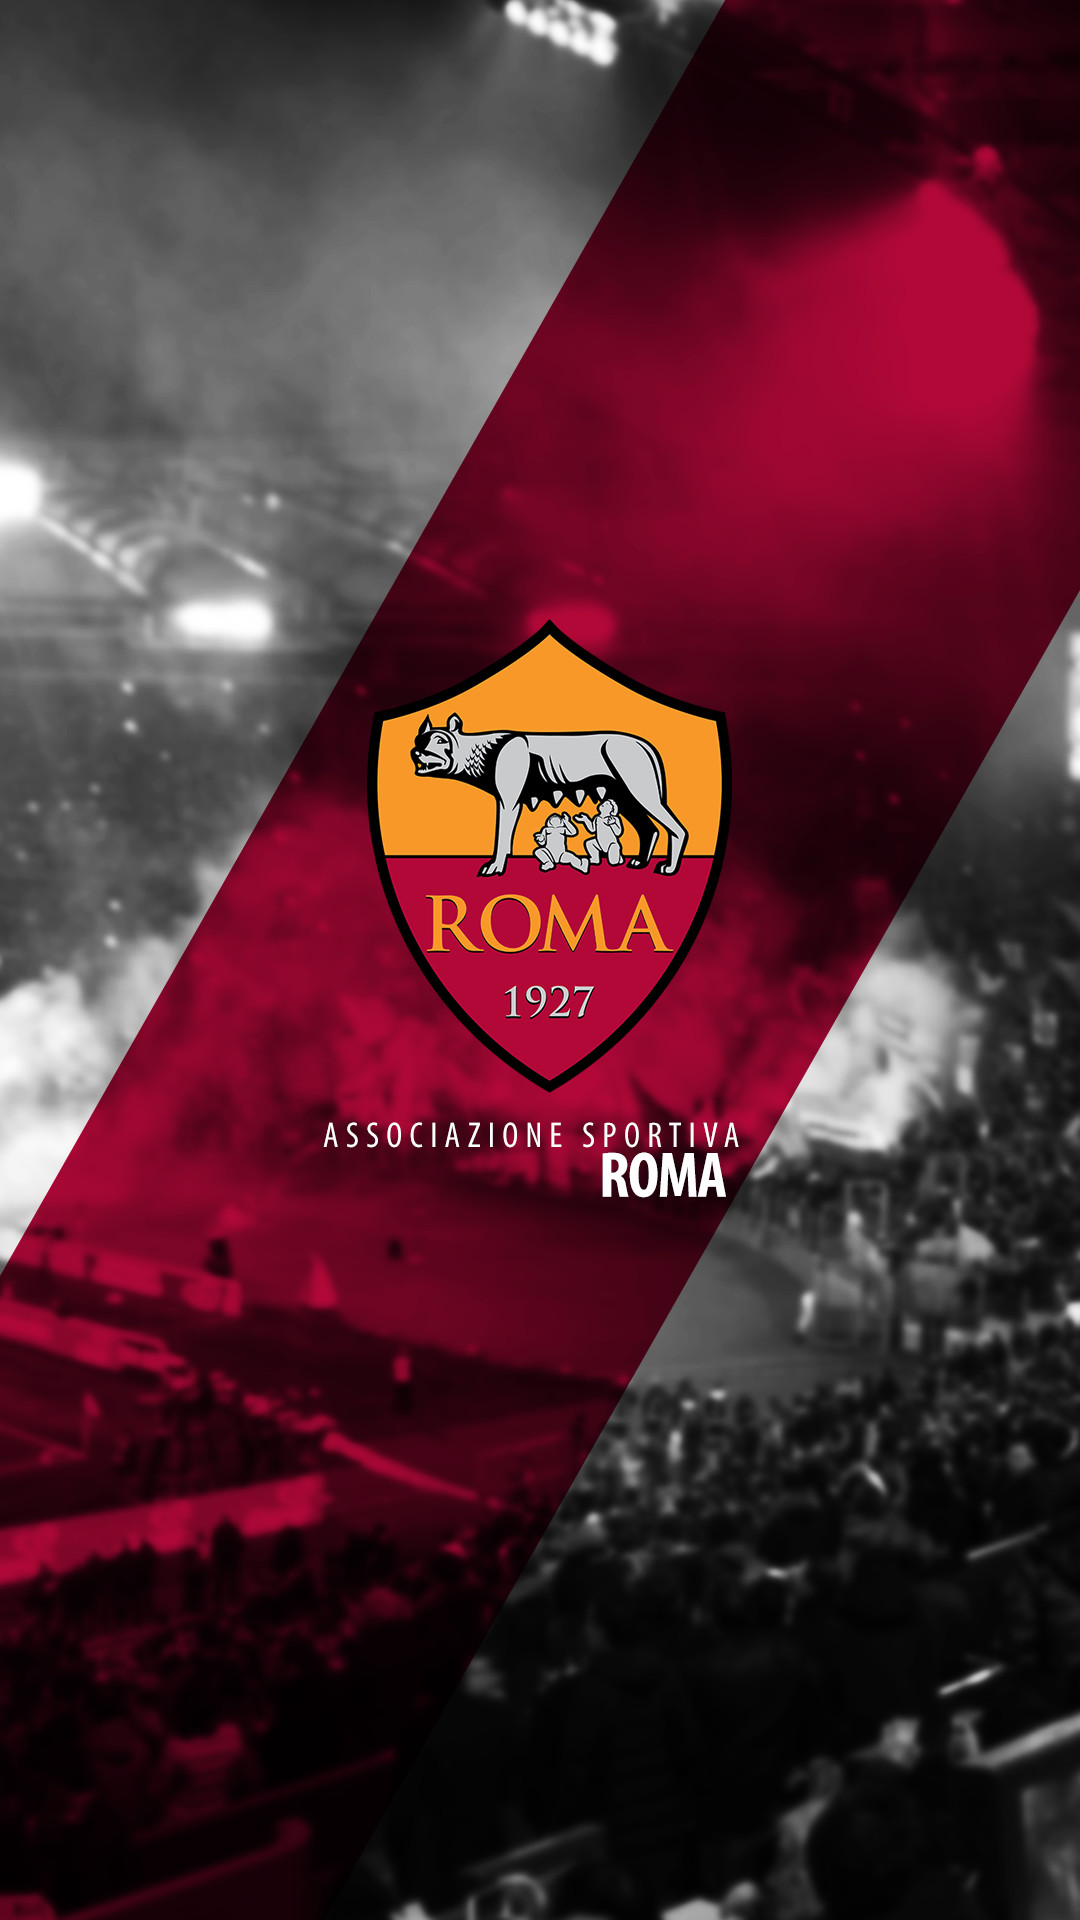 3d Background Wallpaper Apk As Roma Wallpapers 183 ①